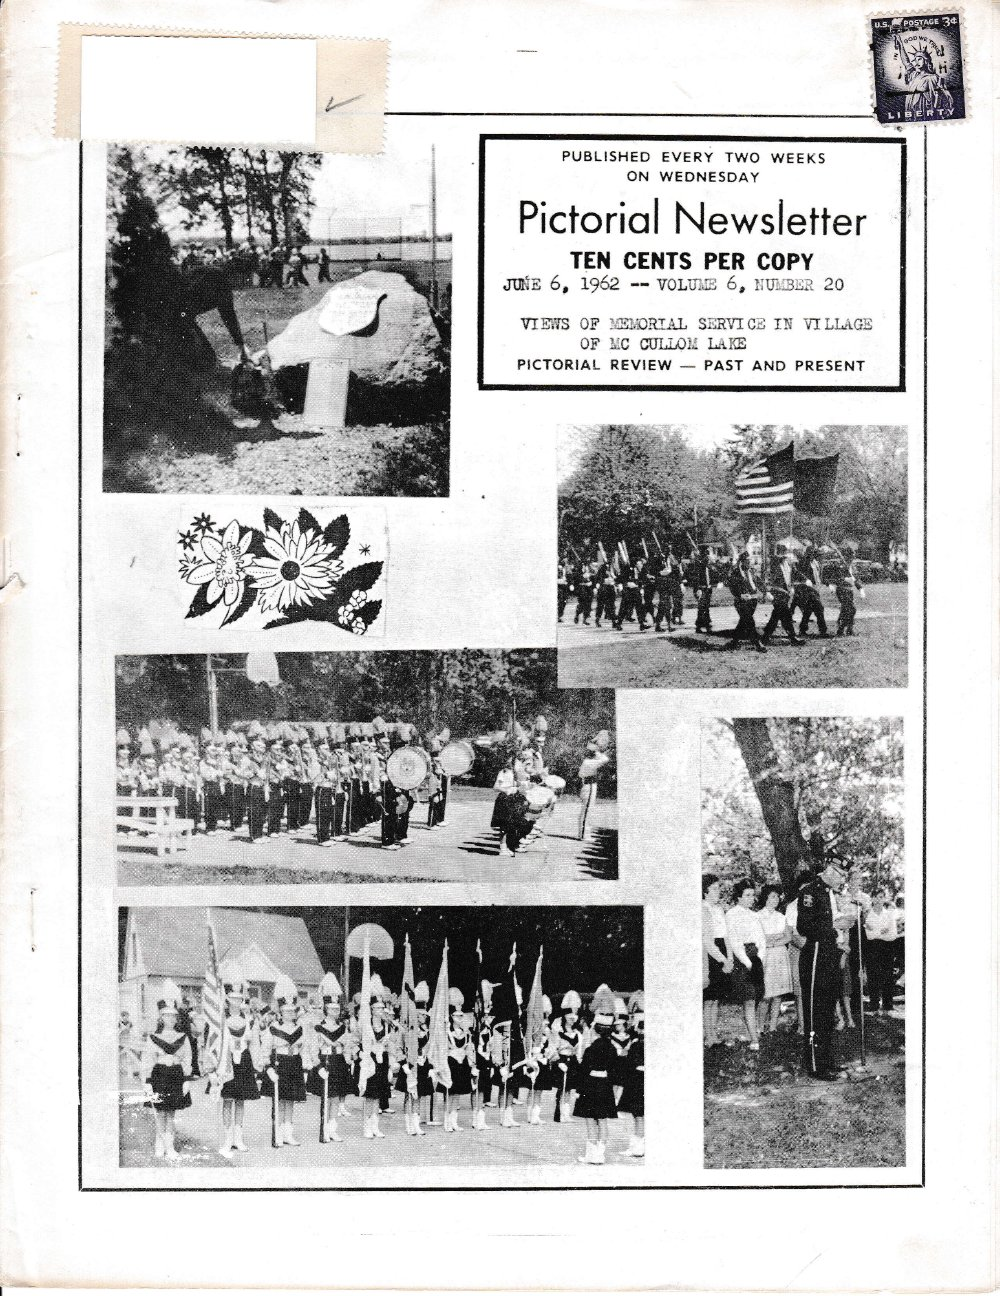 The Pictorial Newsletter: June 6, 1962